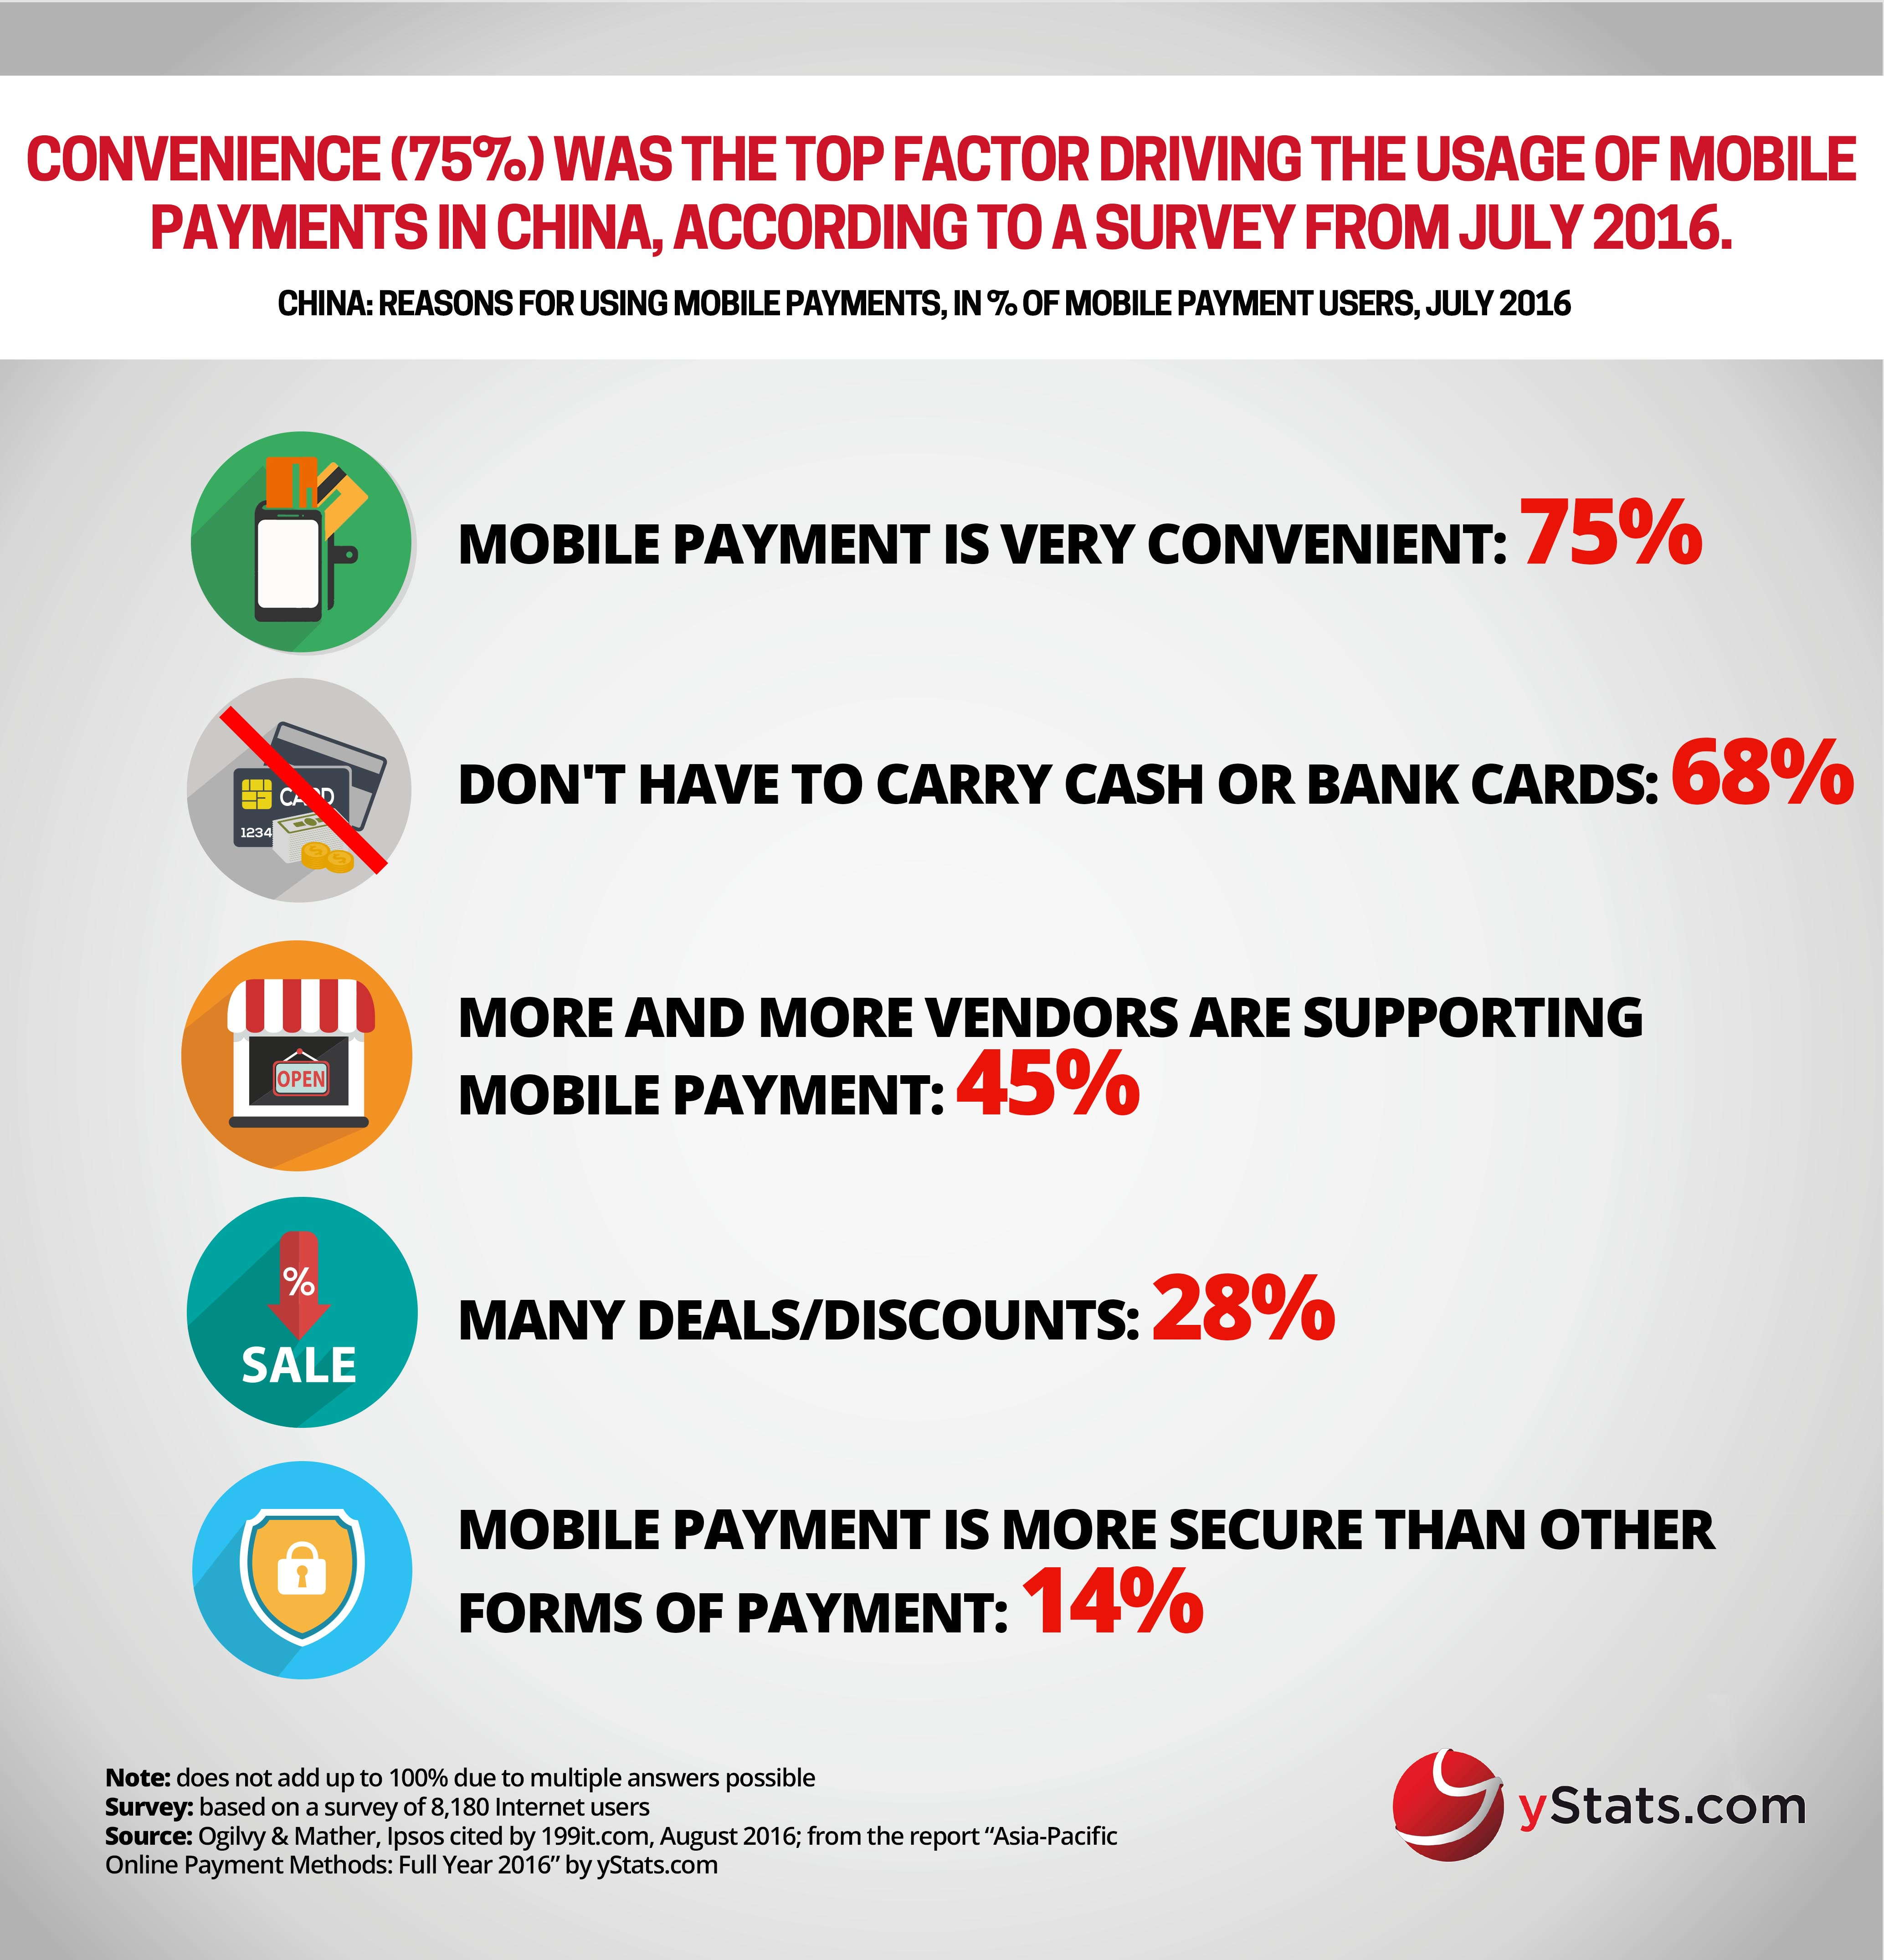 YStats.com Infographic Asia-Pacific Online Payment Methods